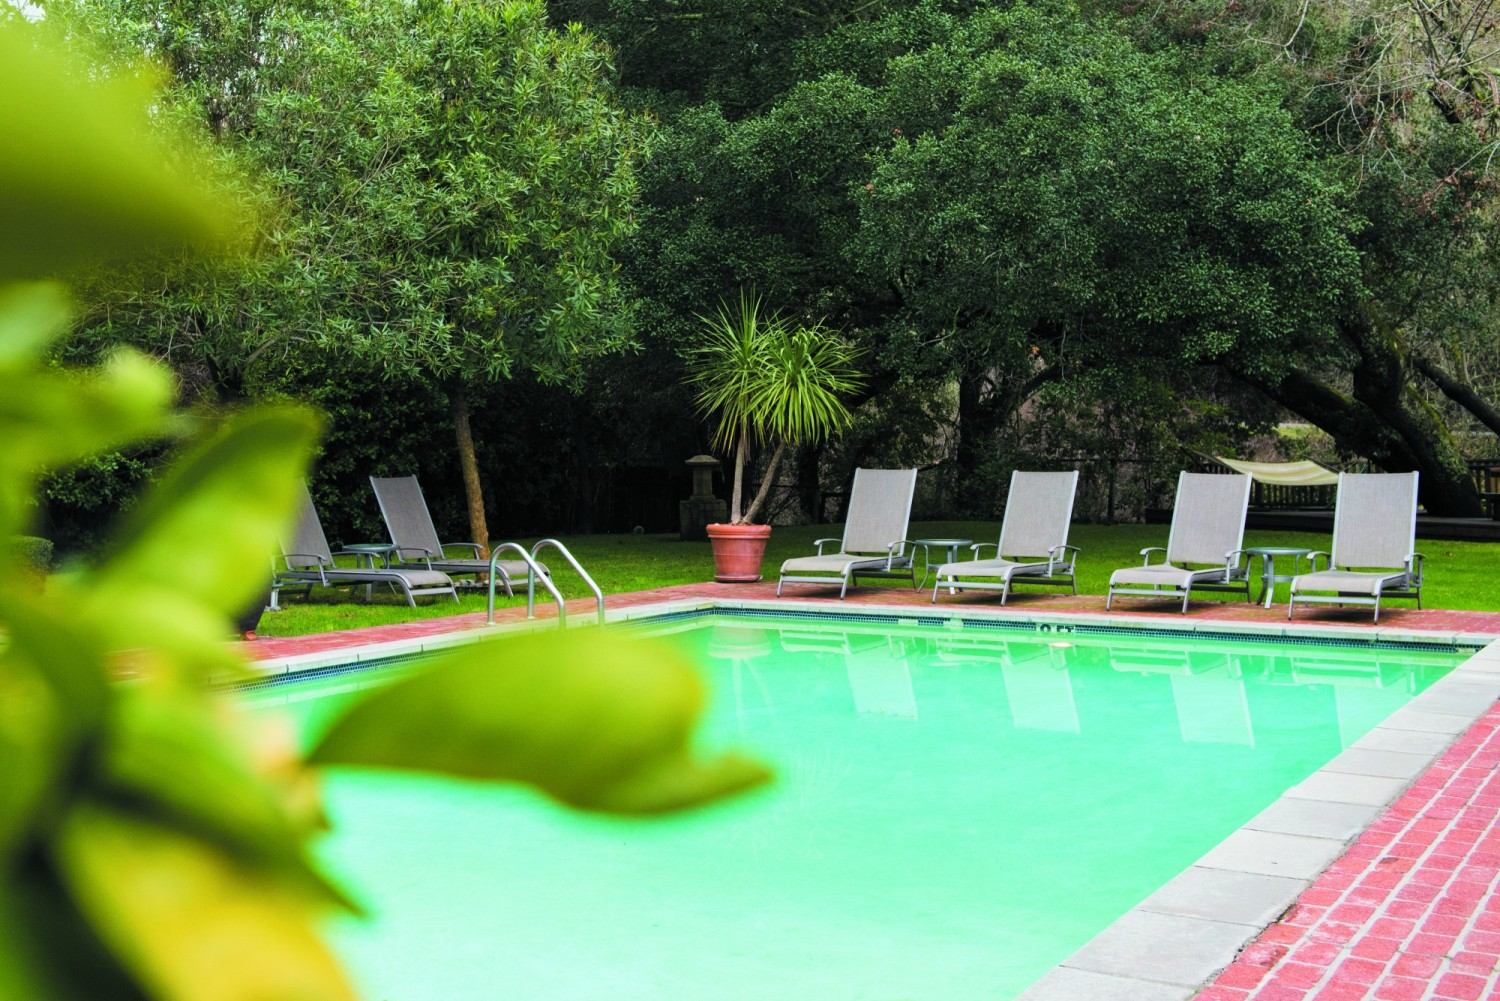 The pool awaits in a serene setting.